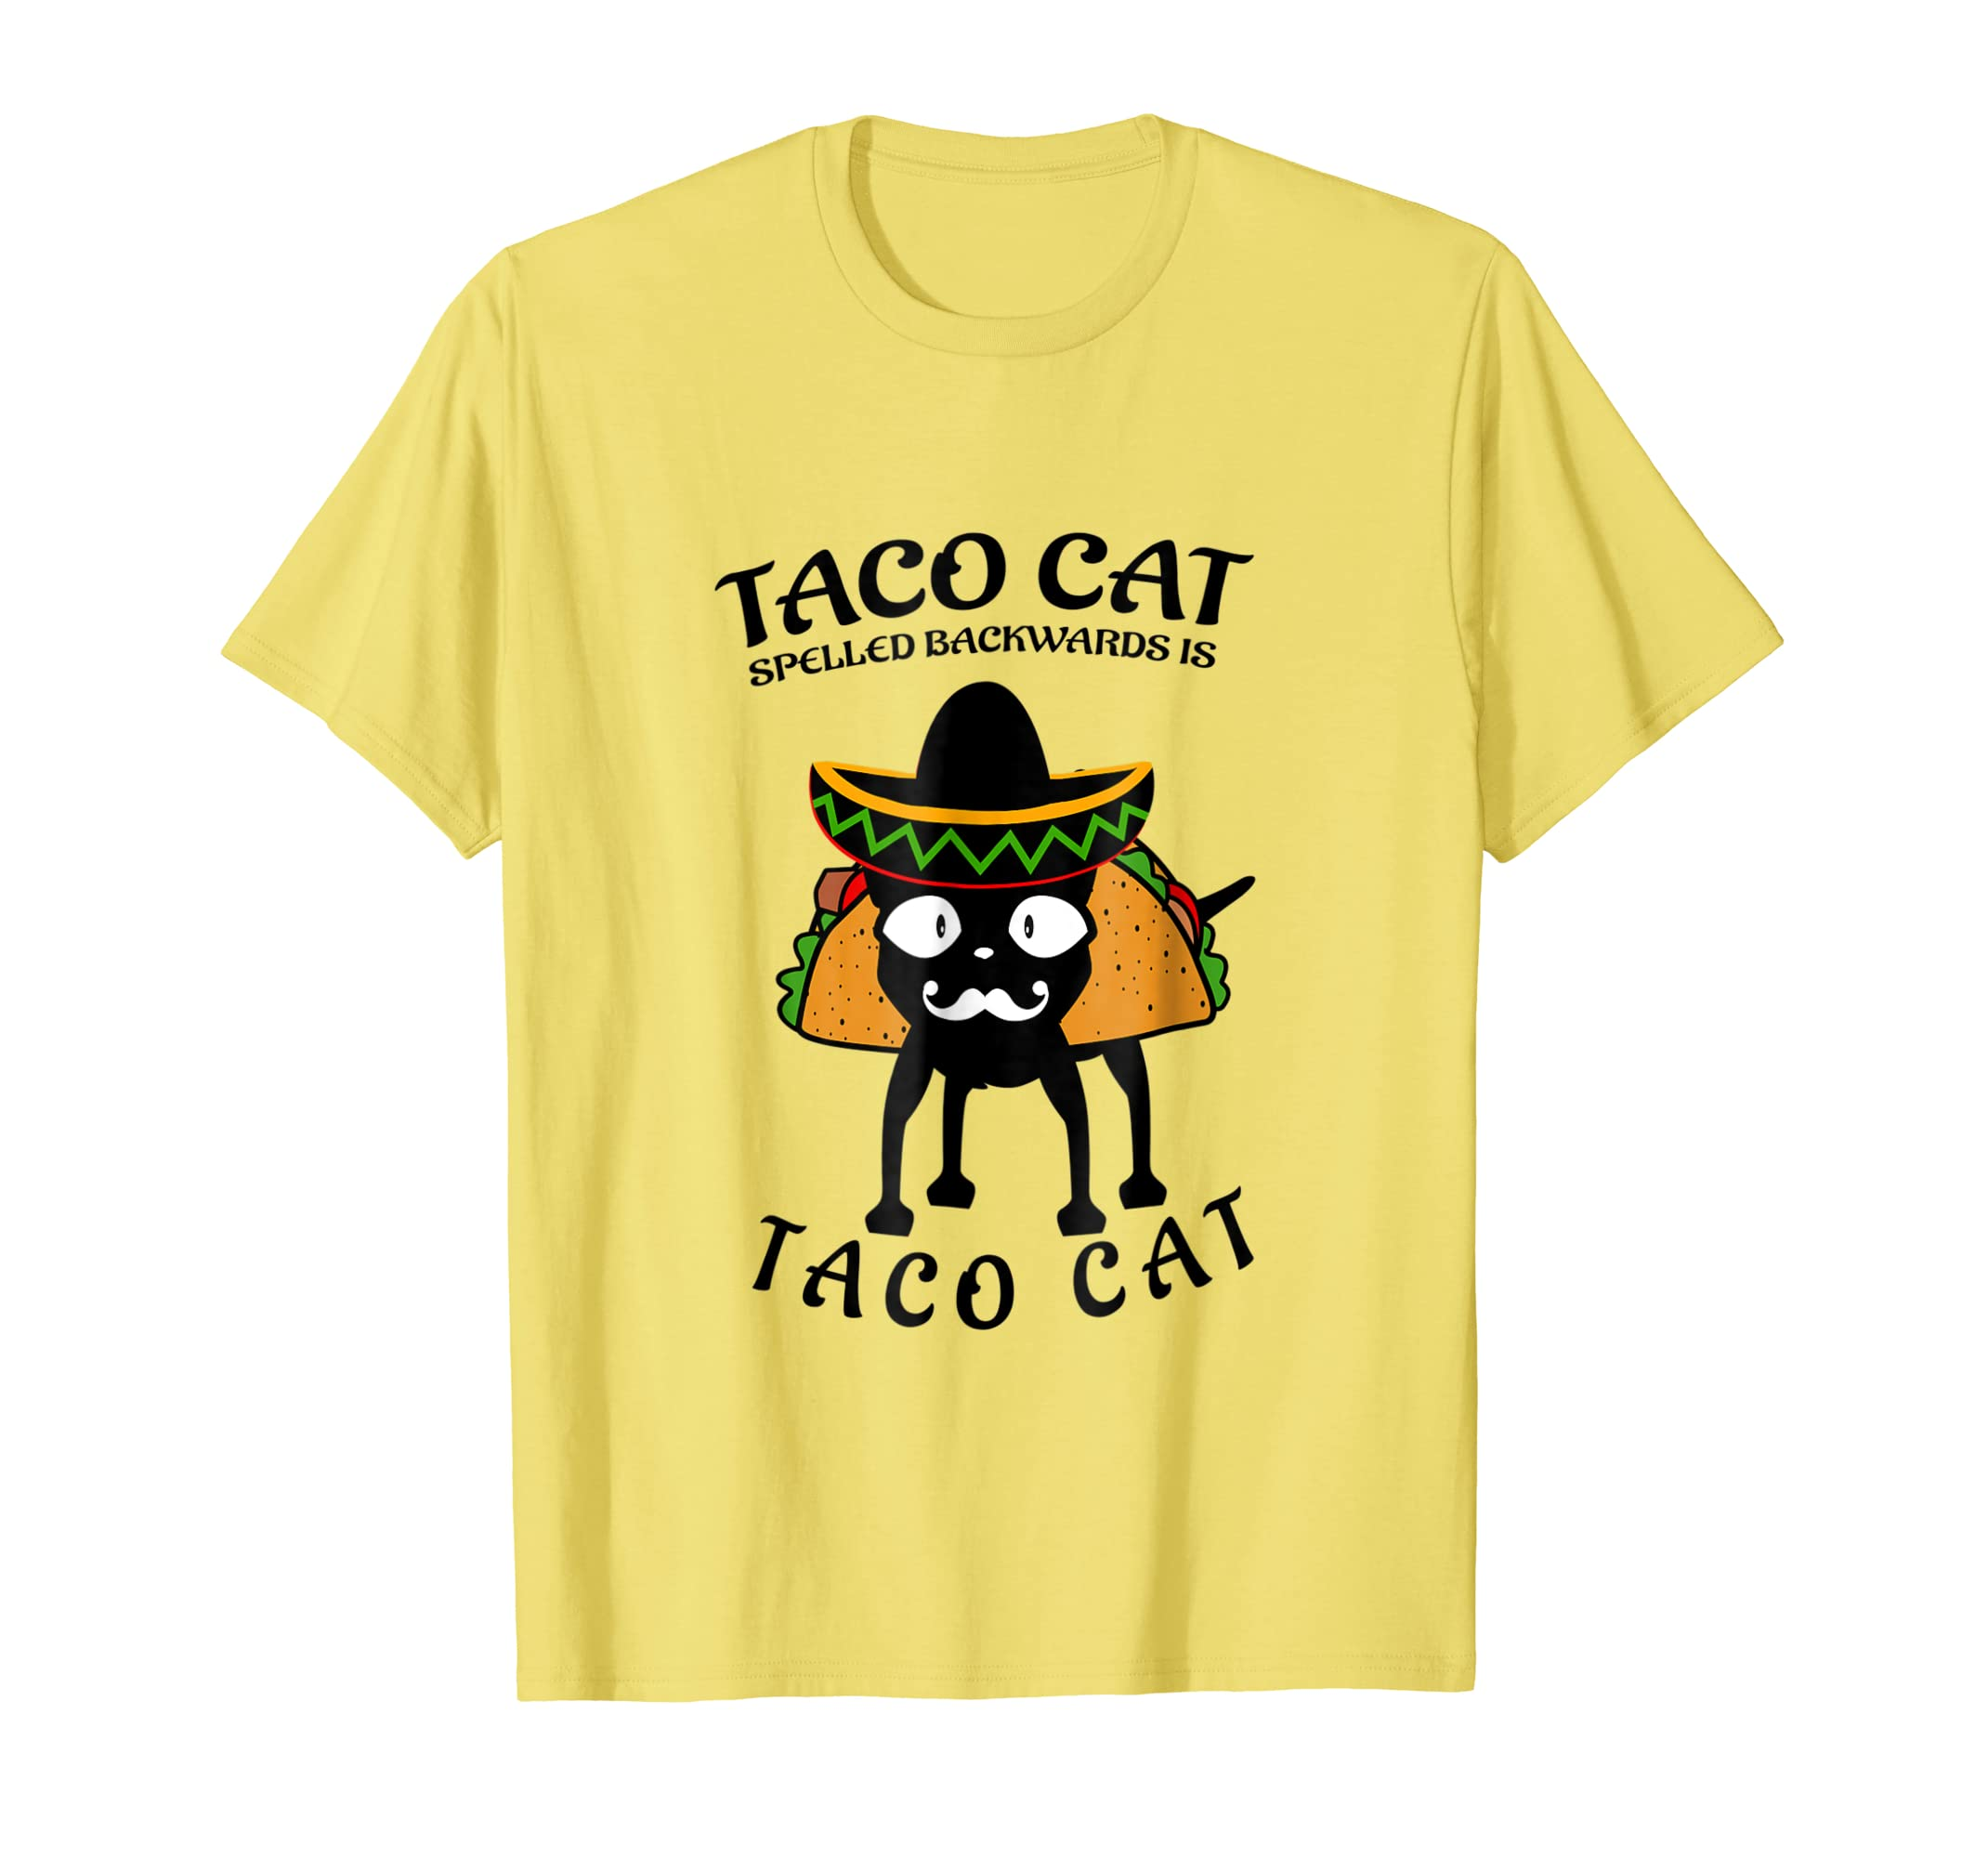 Amazon.com: tacocat spelled backwards shirt taco cat for men women kids: Clothing